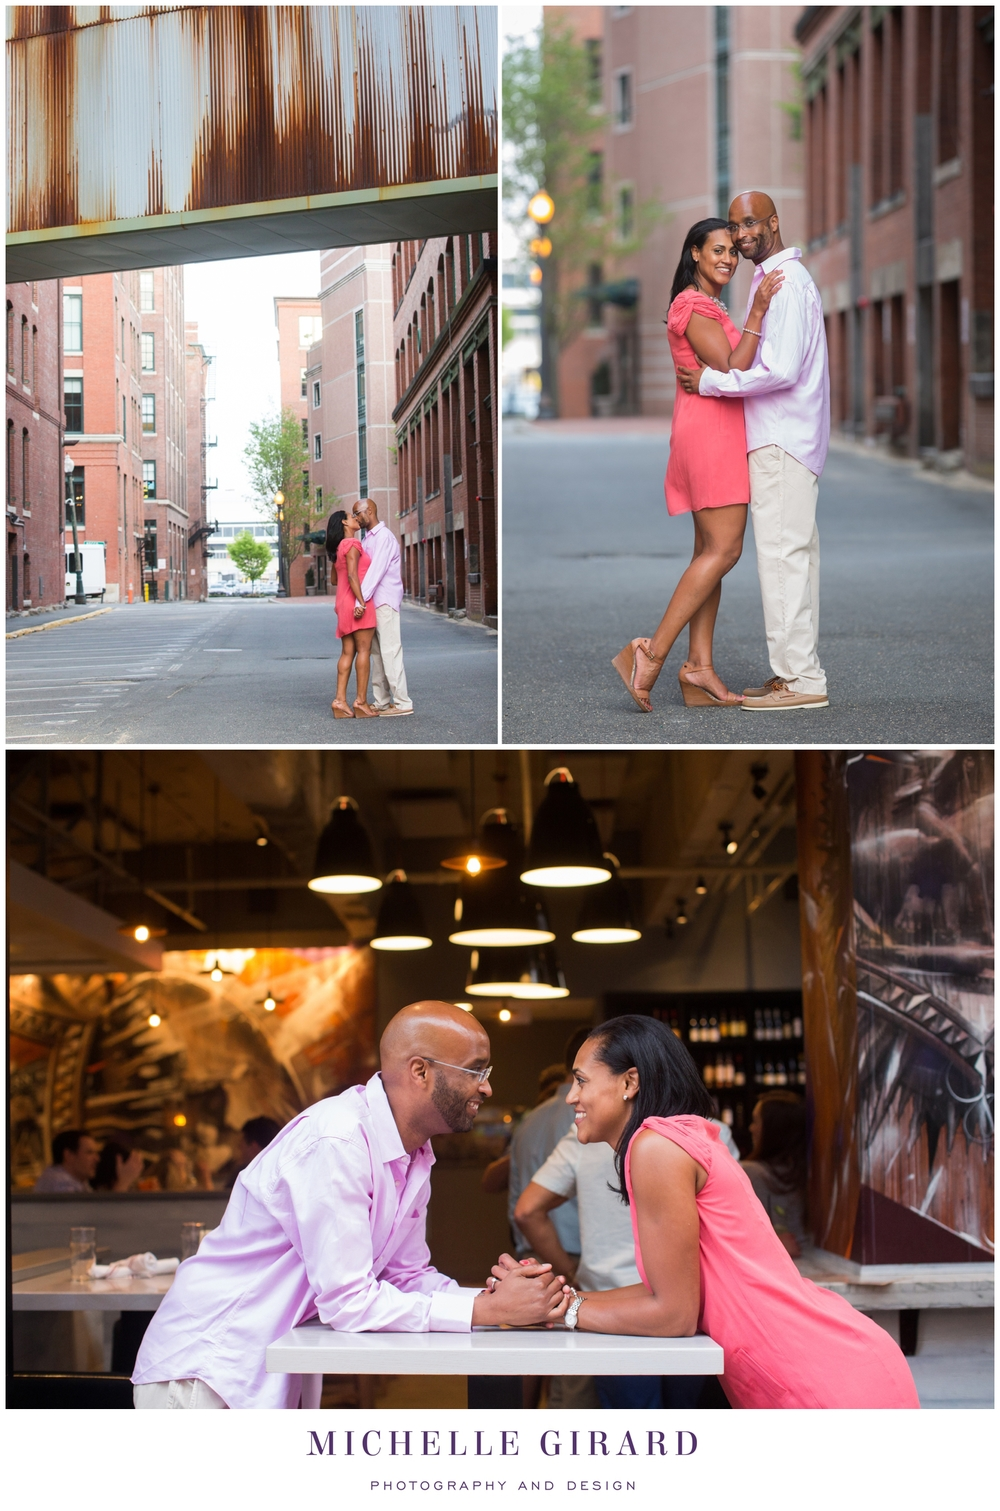 Boston_CityBarEngagementSession_Massachusetts_MichelleGirardPhotography09.jpg